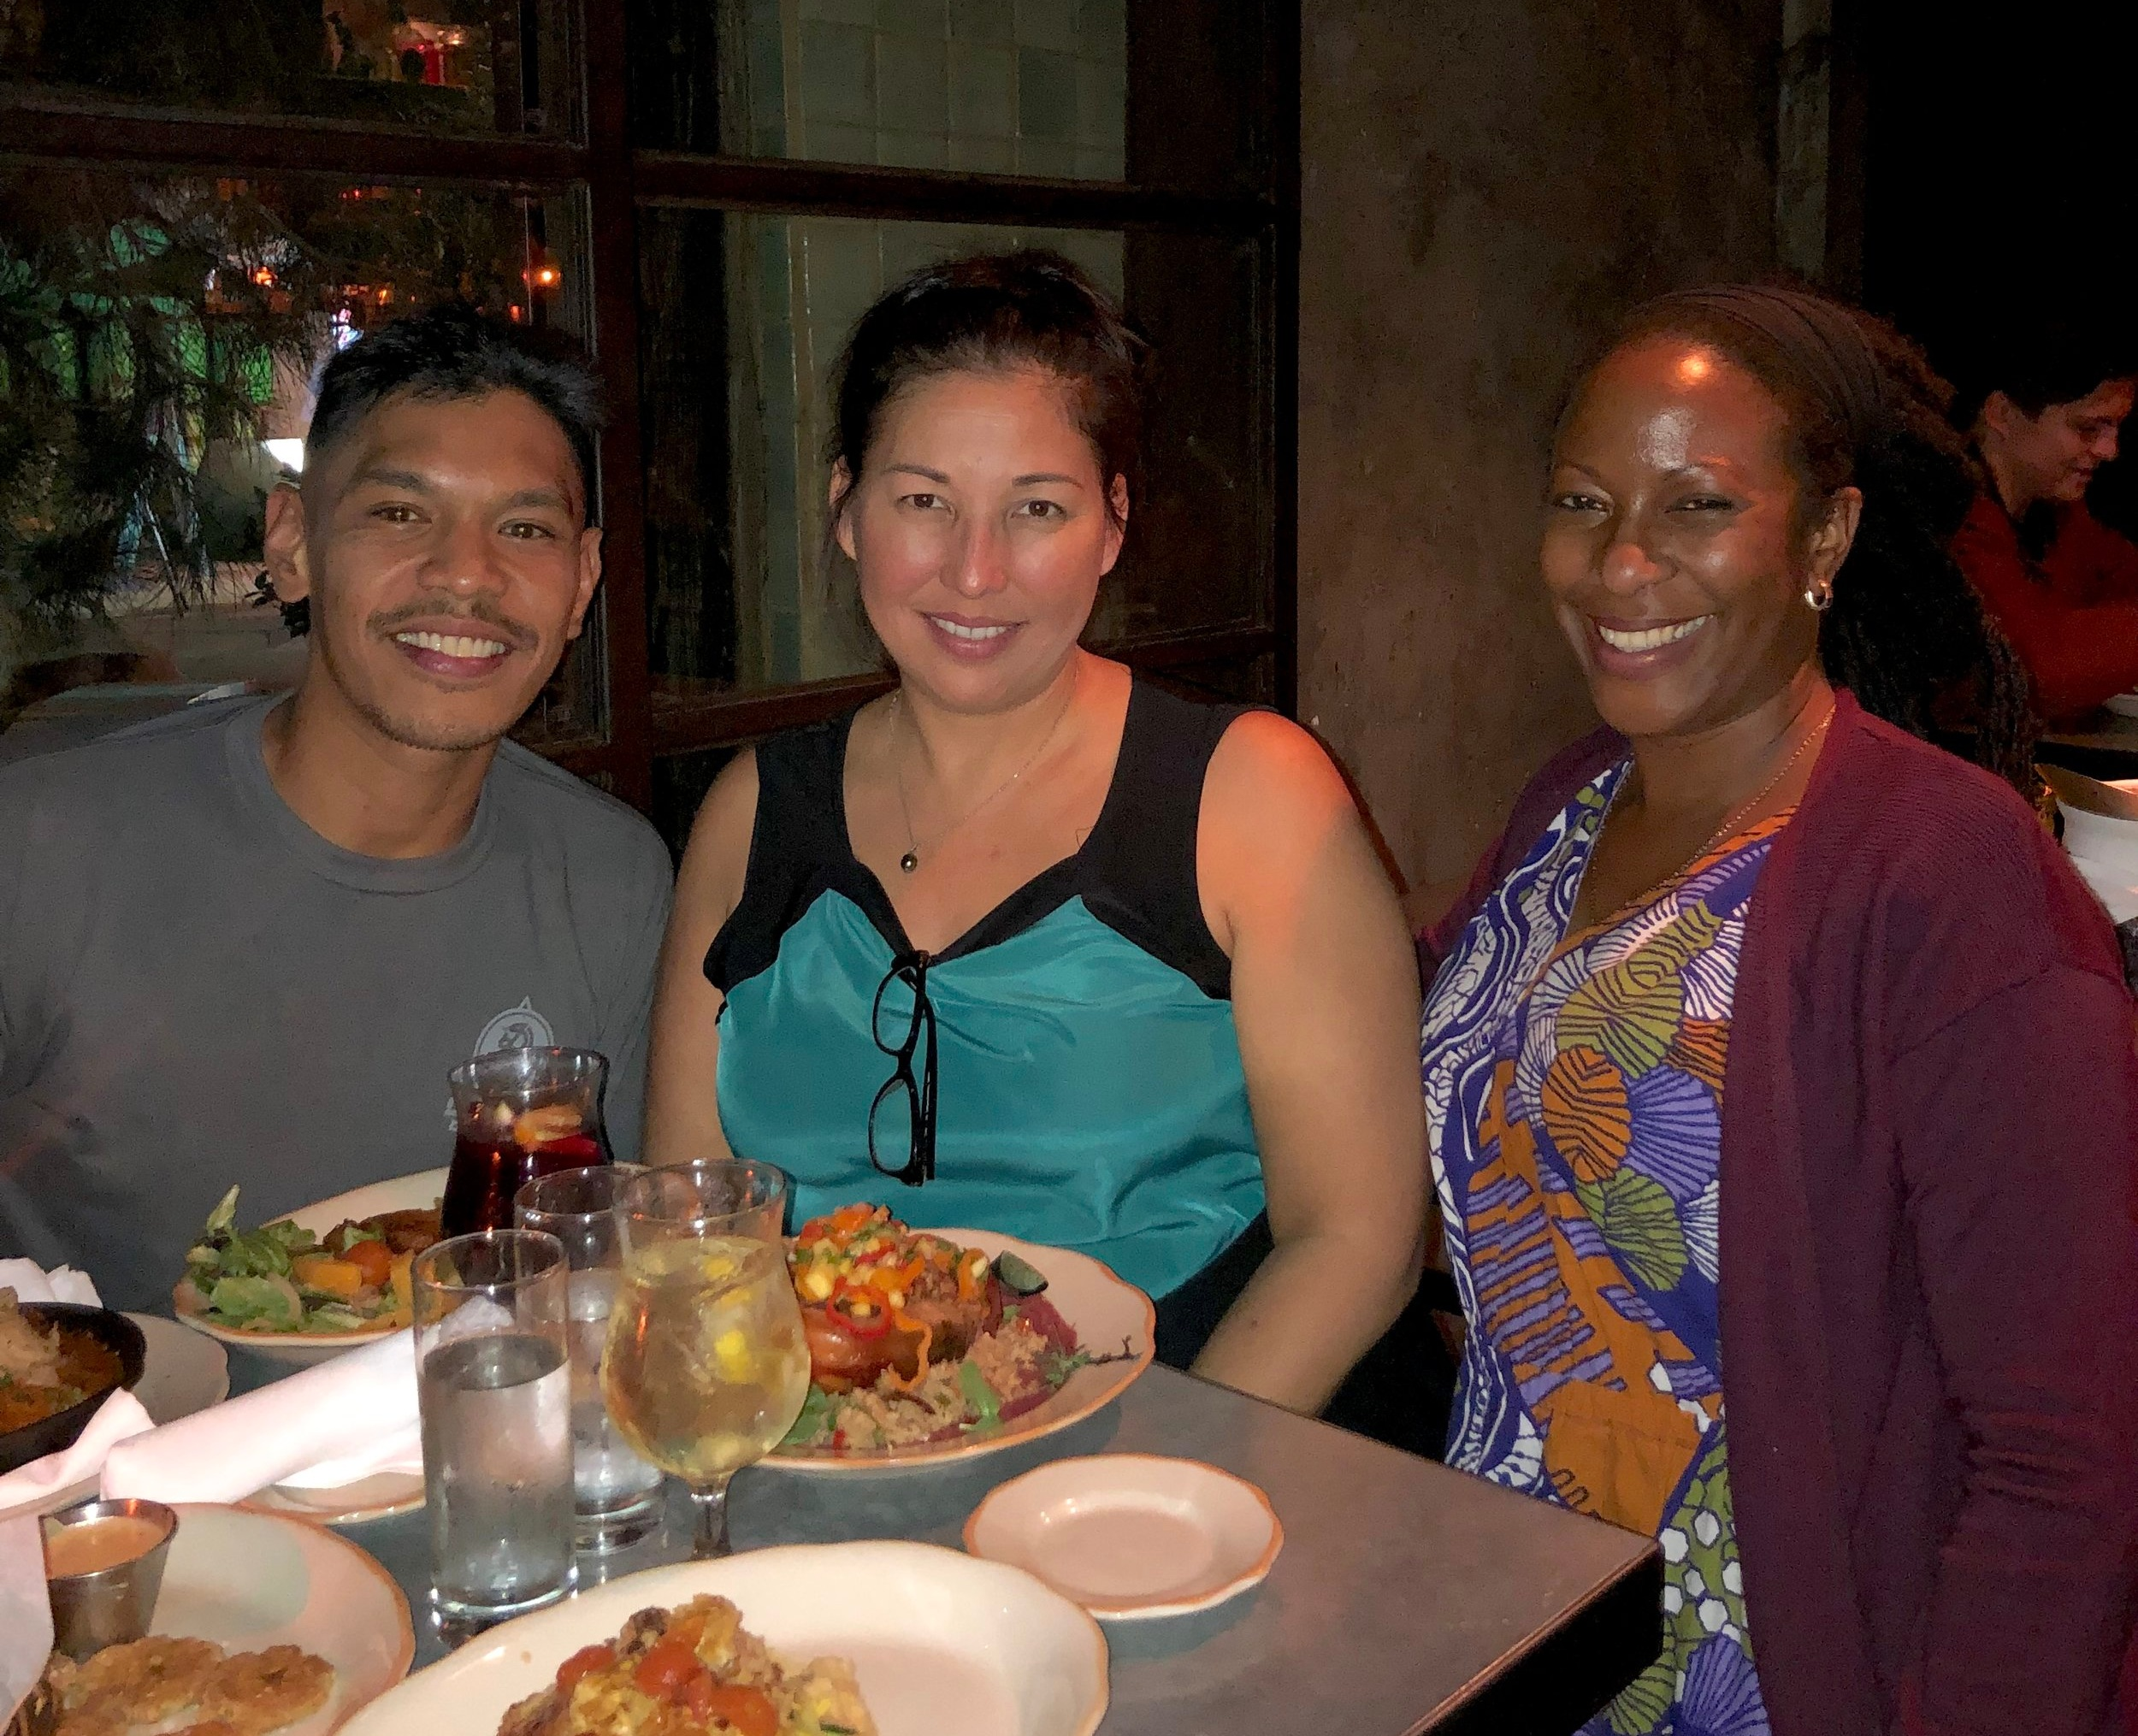 Kelvin reunites with a research mentor and former graduate school classmate from University of Hawaii for dinner after the SABER West conference.